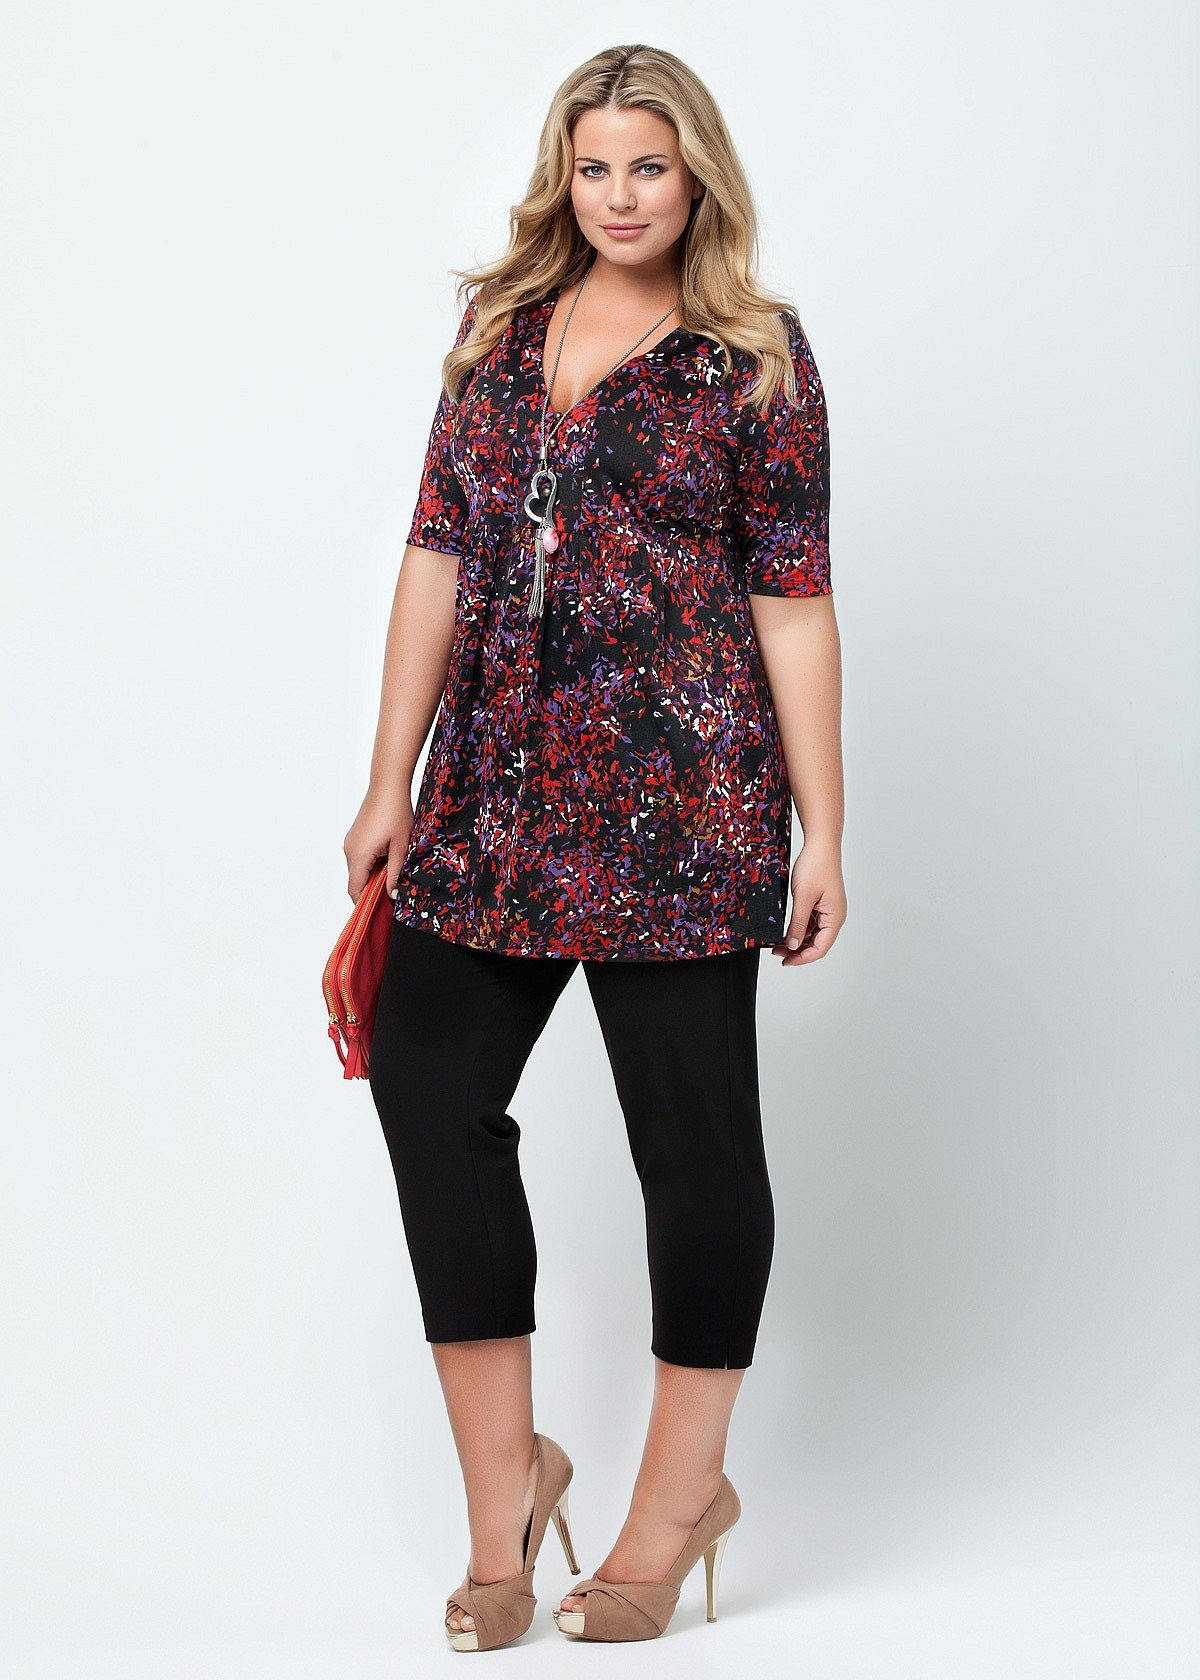 45d5d426577 Fashion Plus Size - Large Size Womens Clothes